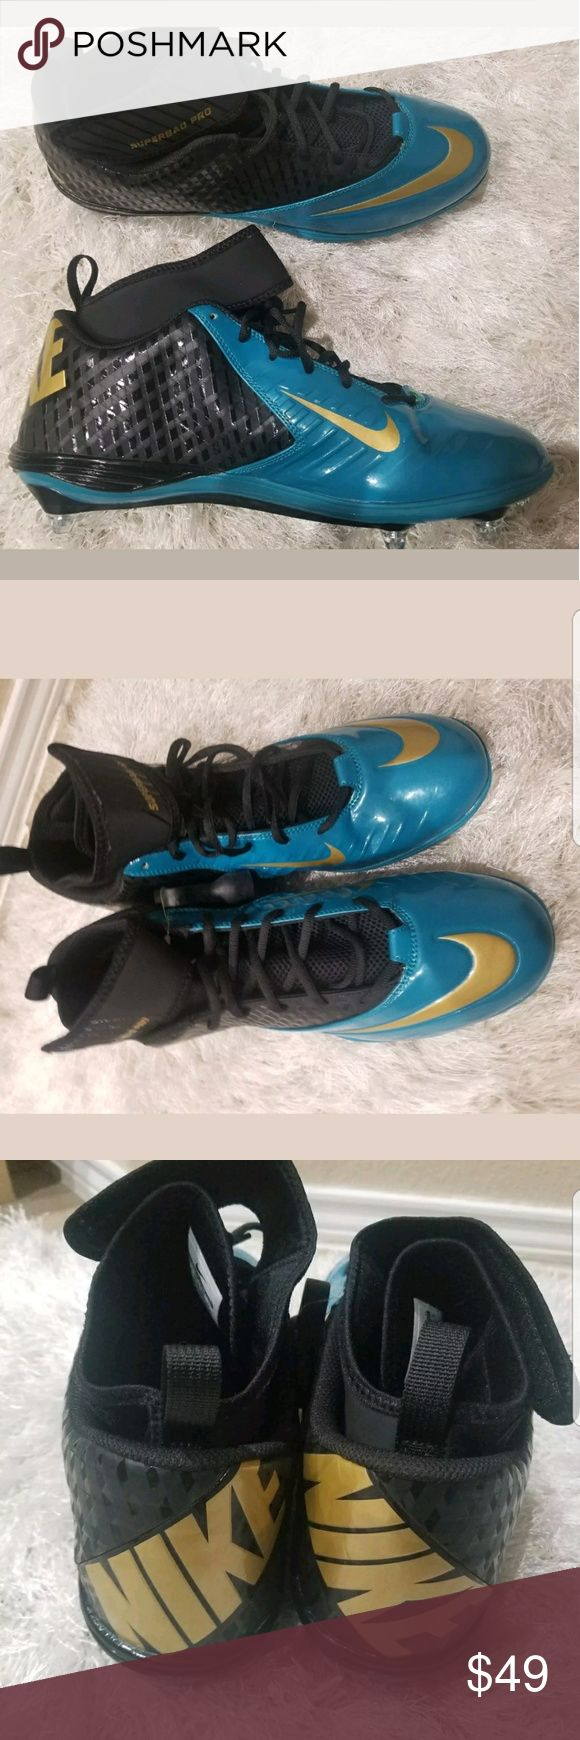 NIKE LUNAR SUPERBAD PRO TD FOOTBALL CLEATS Shoes NIKE LUNAR SUPERBAD PRO TD FOOTBALL CLEATS BLACK TEAL JAGUARS   Size 14.5   Represent the Jaguars with these great cleats that can be used for football, baseball and basketball.   Brand new without box.   Thanks for looking!  Nike Shoes Athletic Shoes